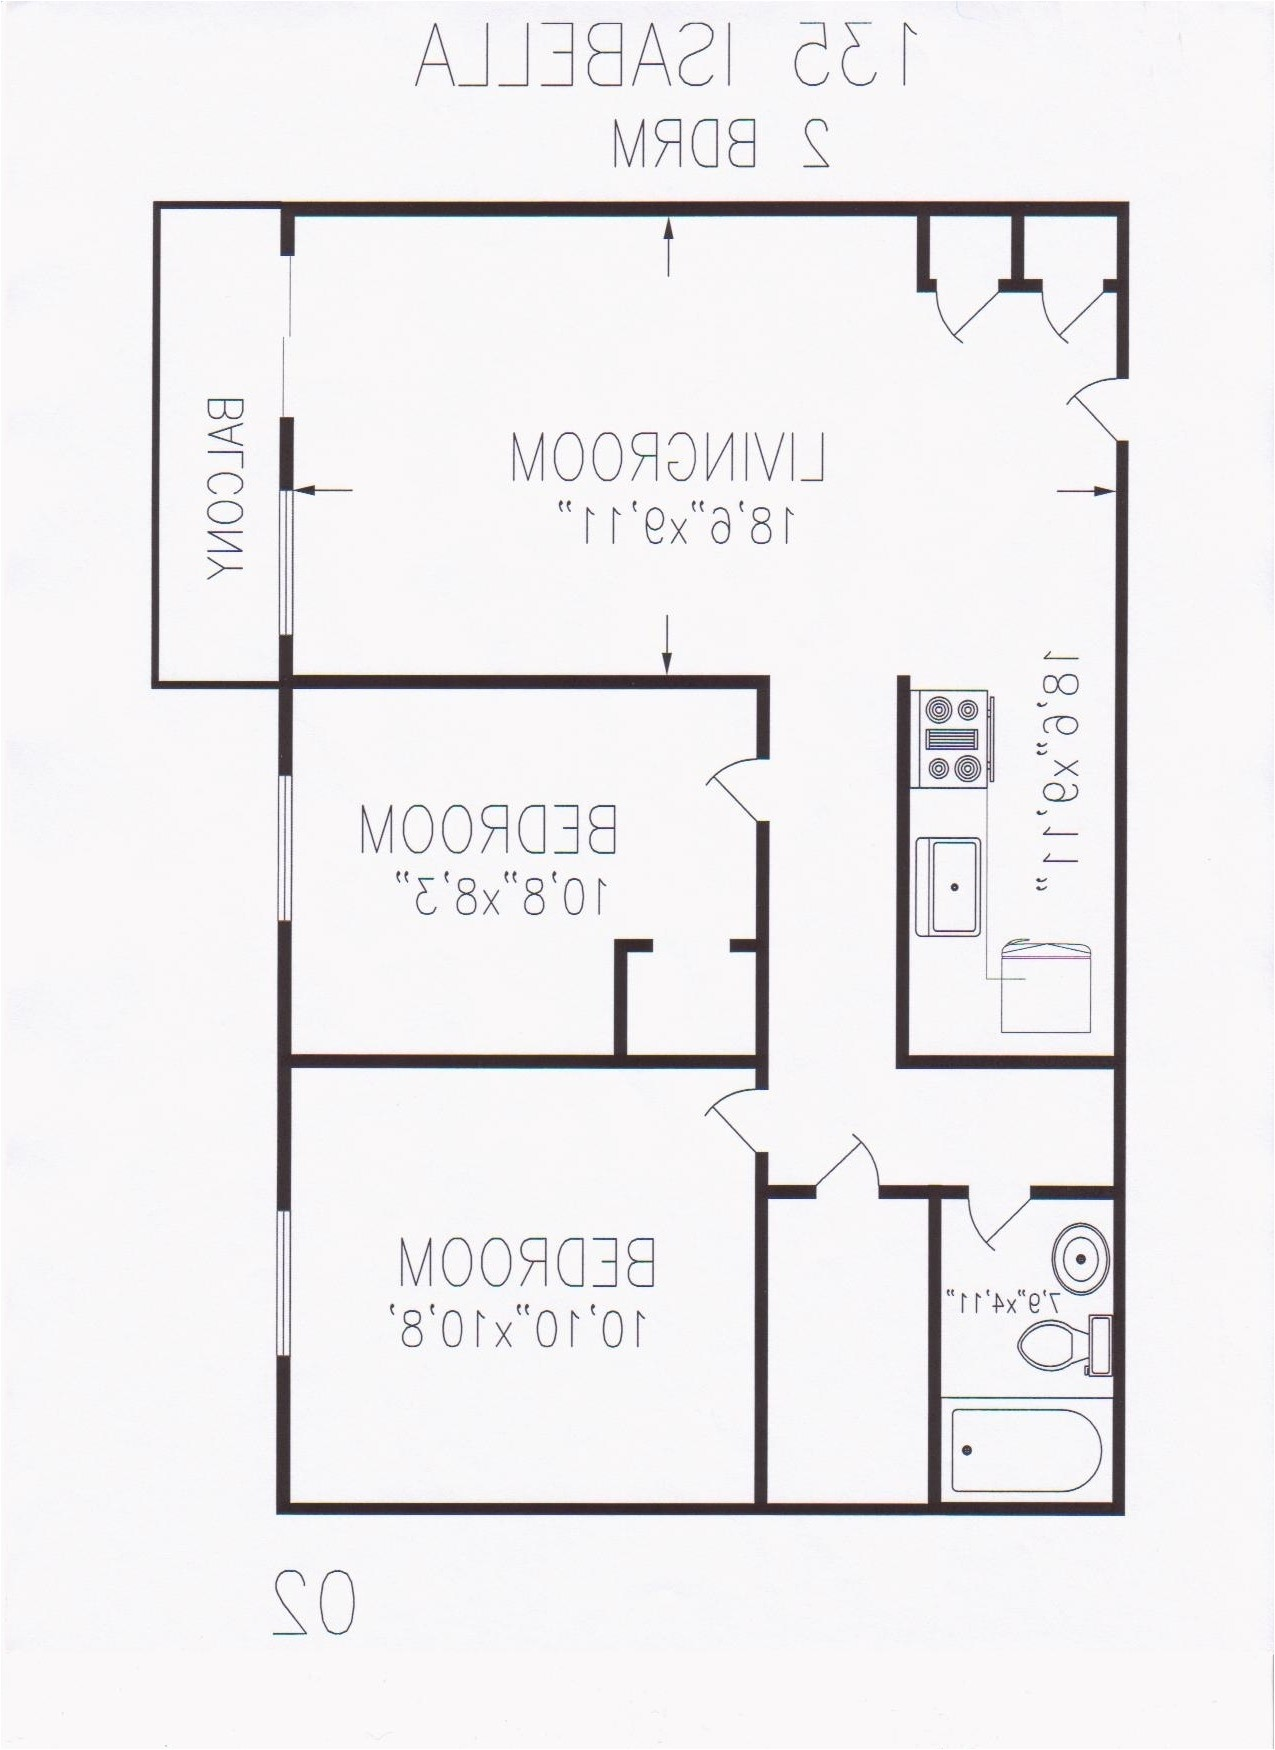 600 sq ft house plans 1 bedroom